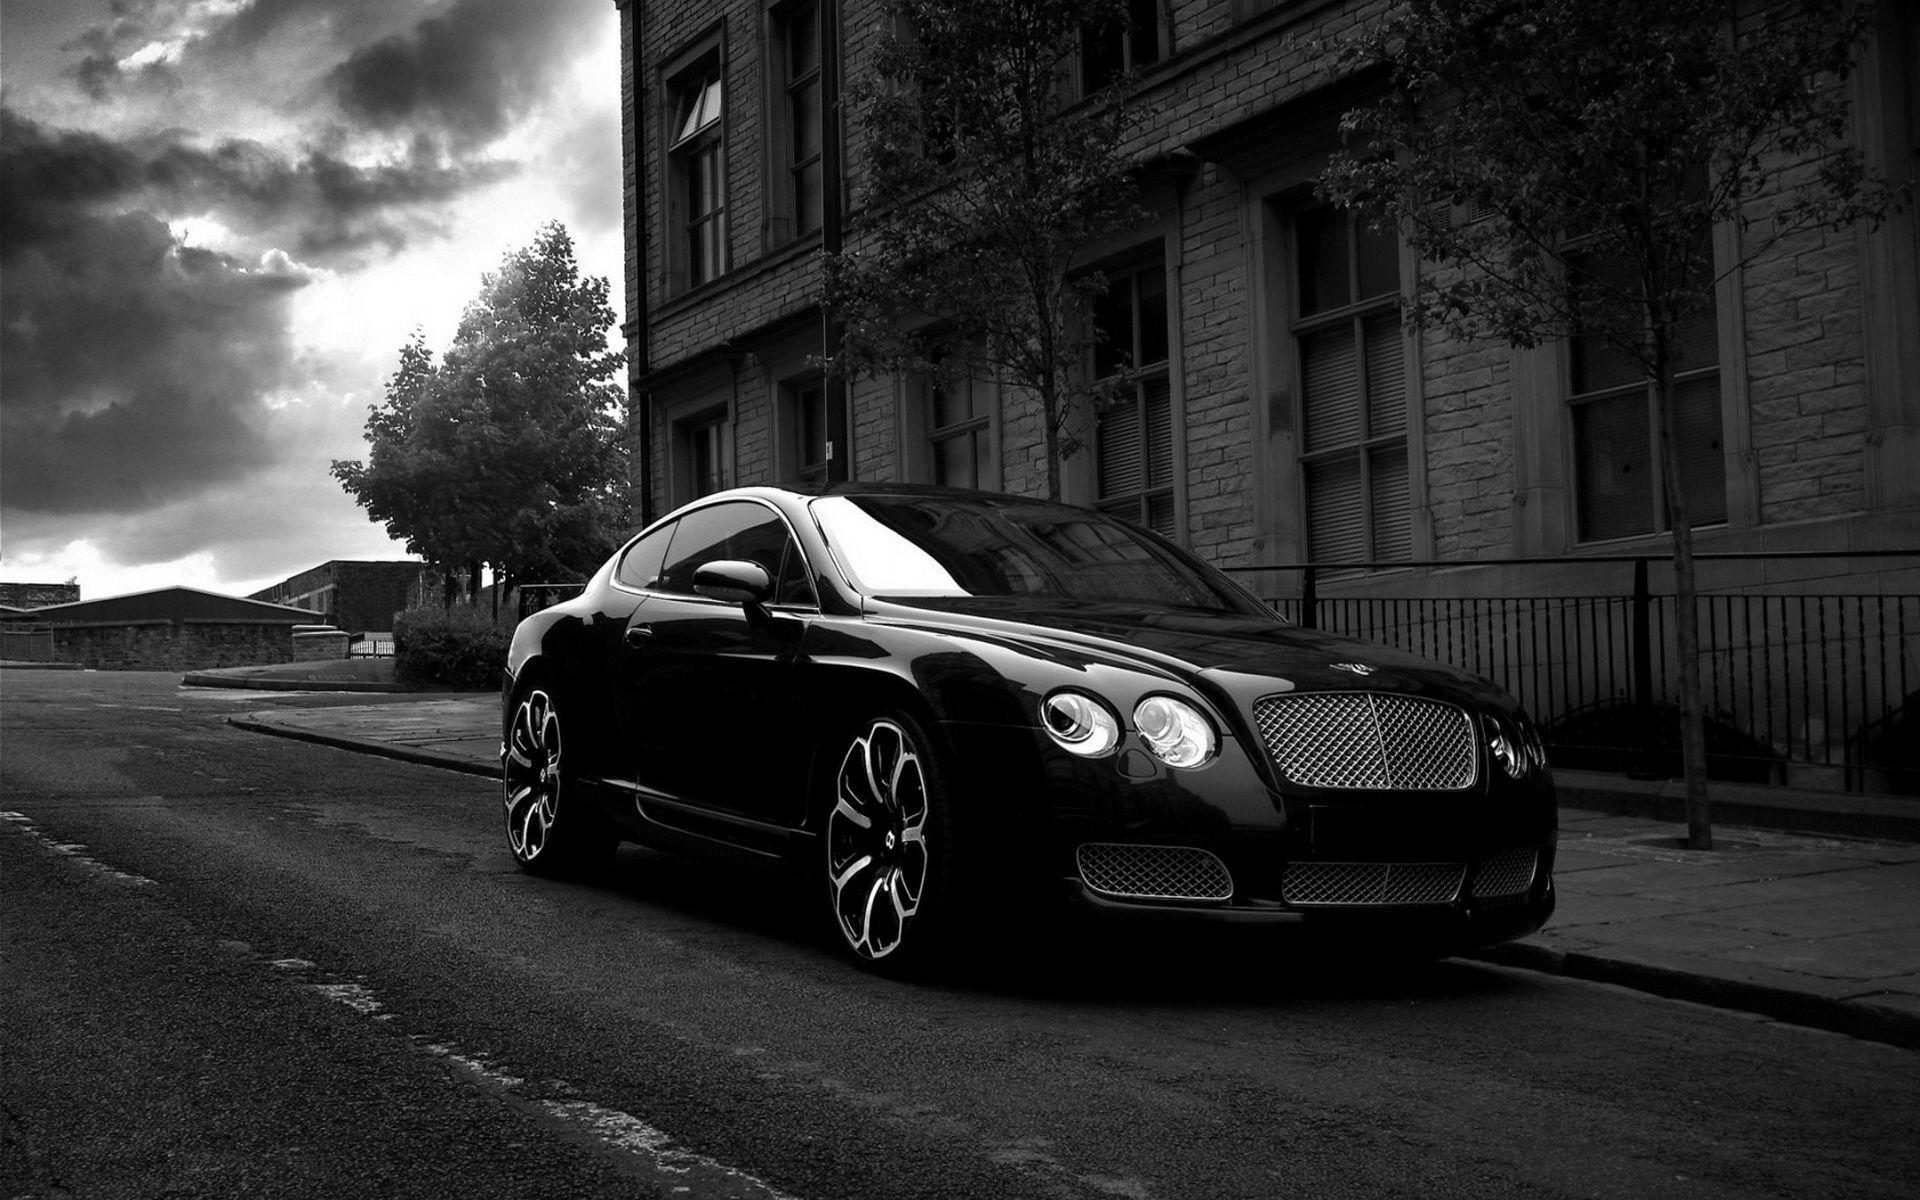 Bentley Continental GT Wallpaper 48794 1920x1200 px ~ HDWallSource.com